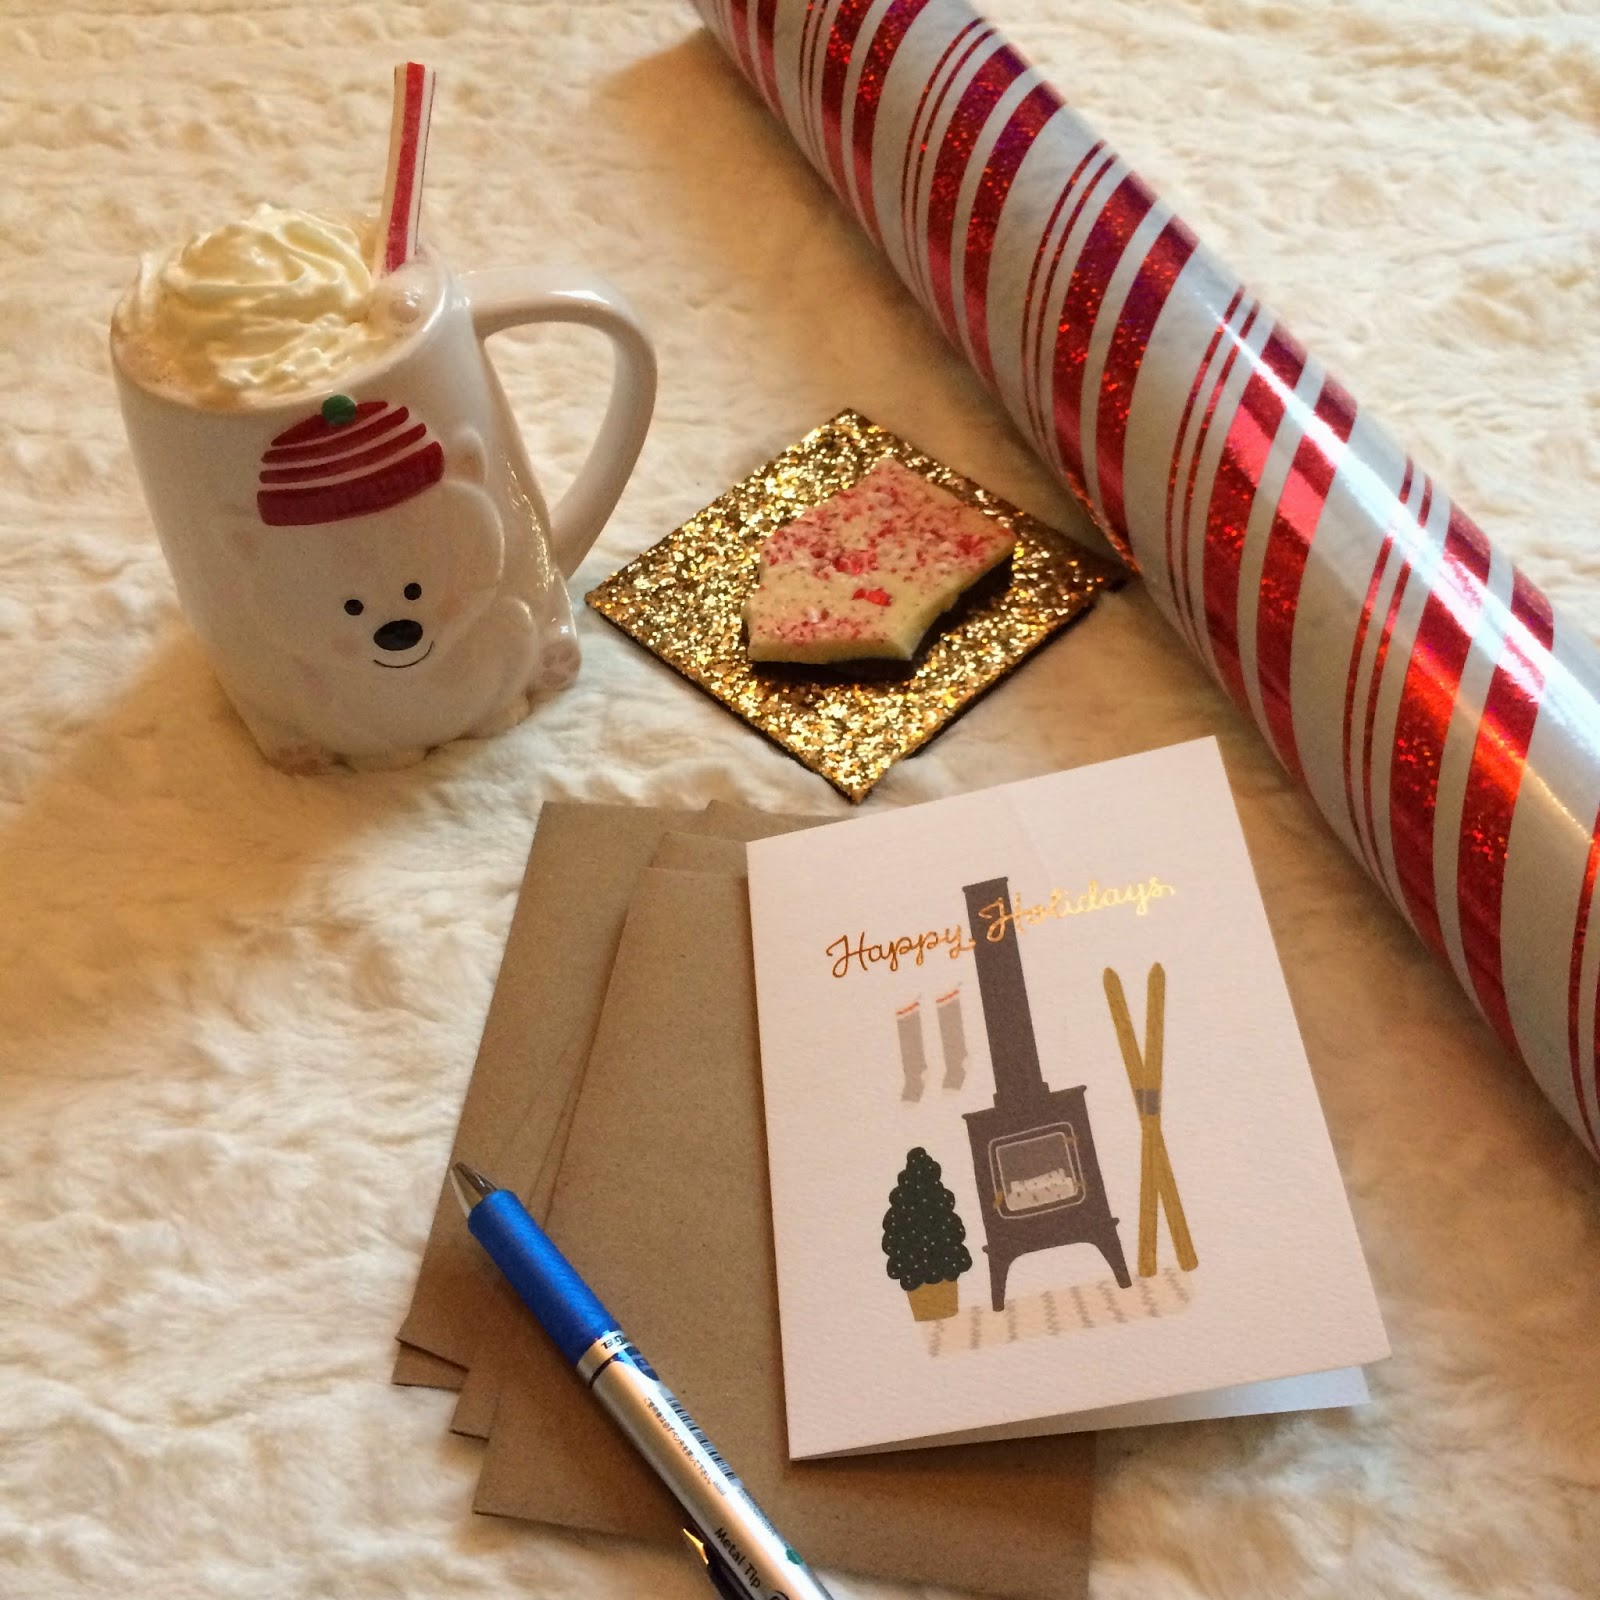 delicious christmas treats and wrapping